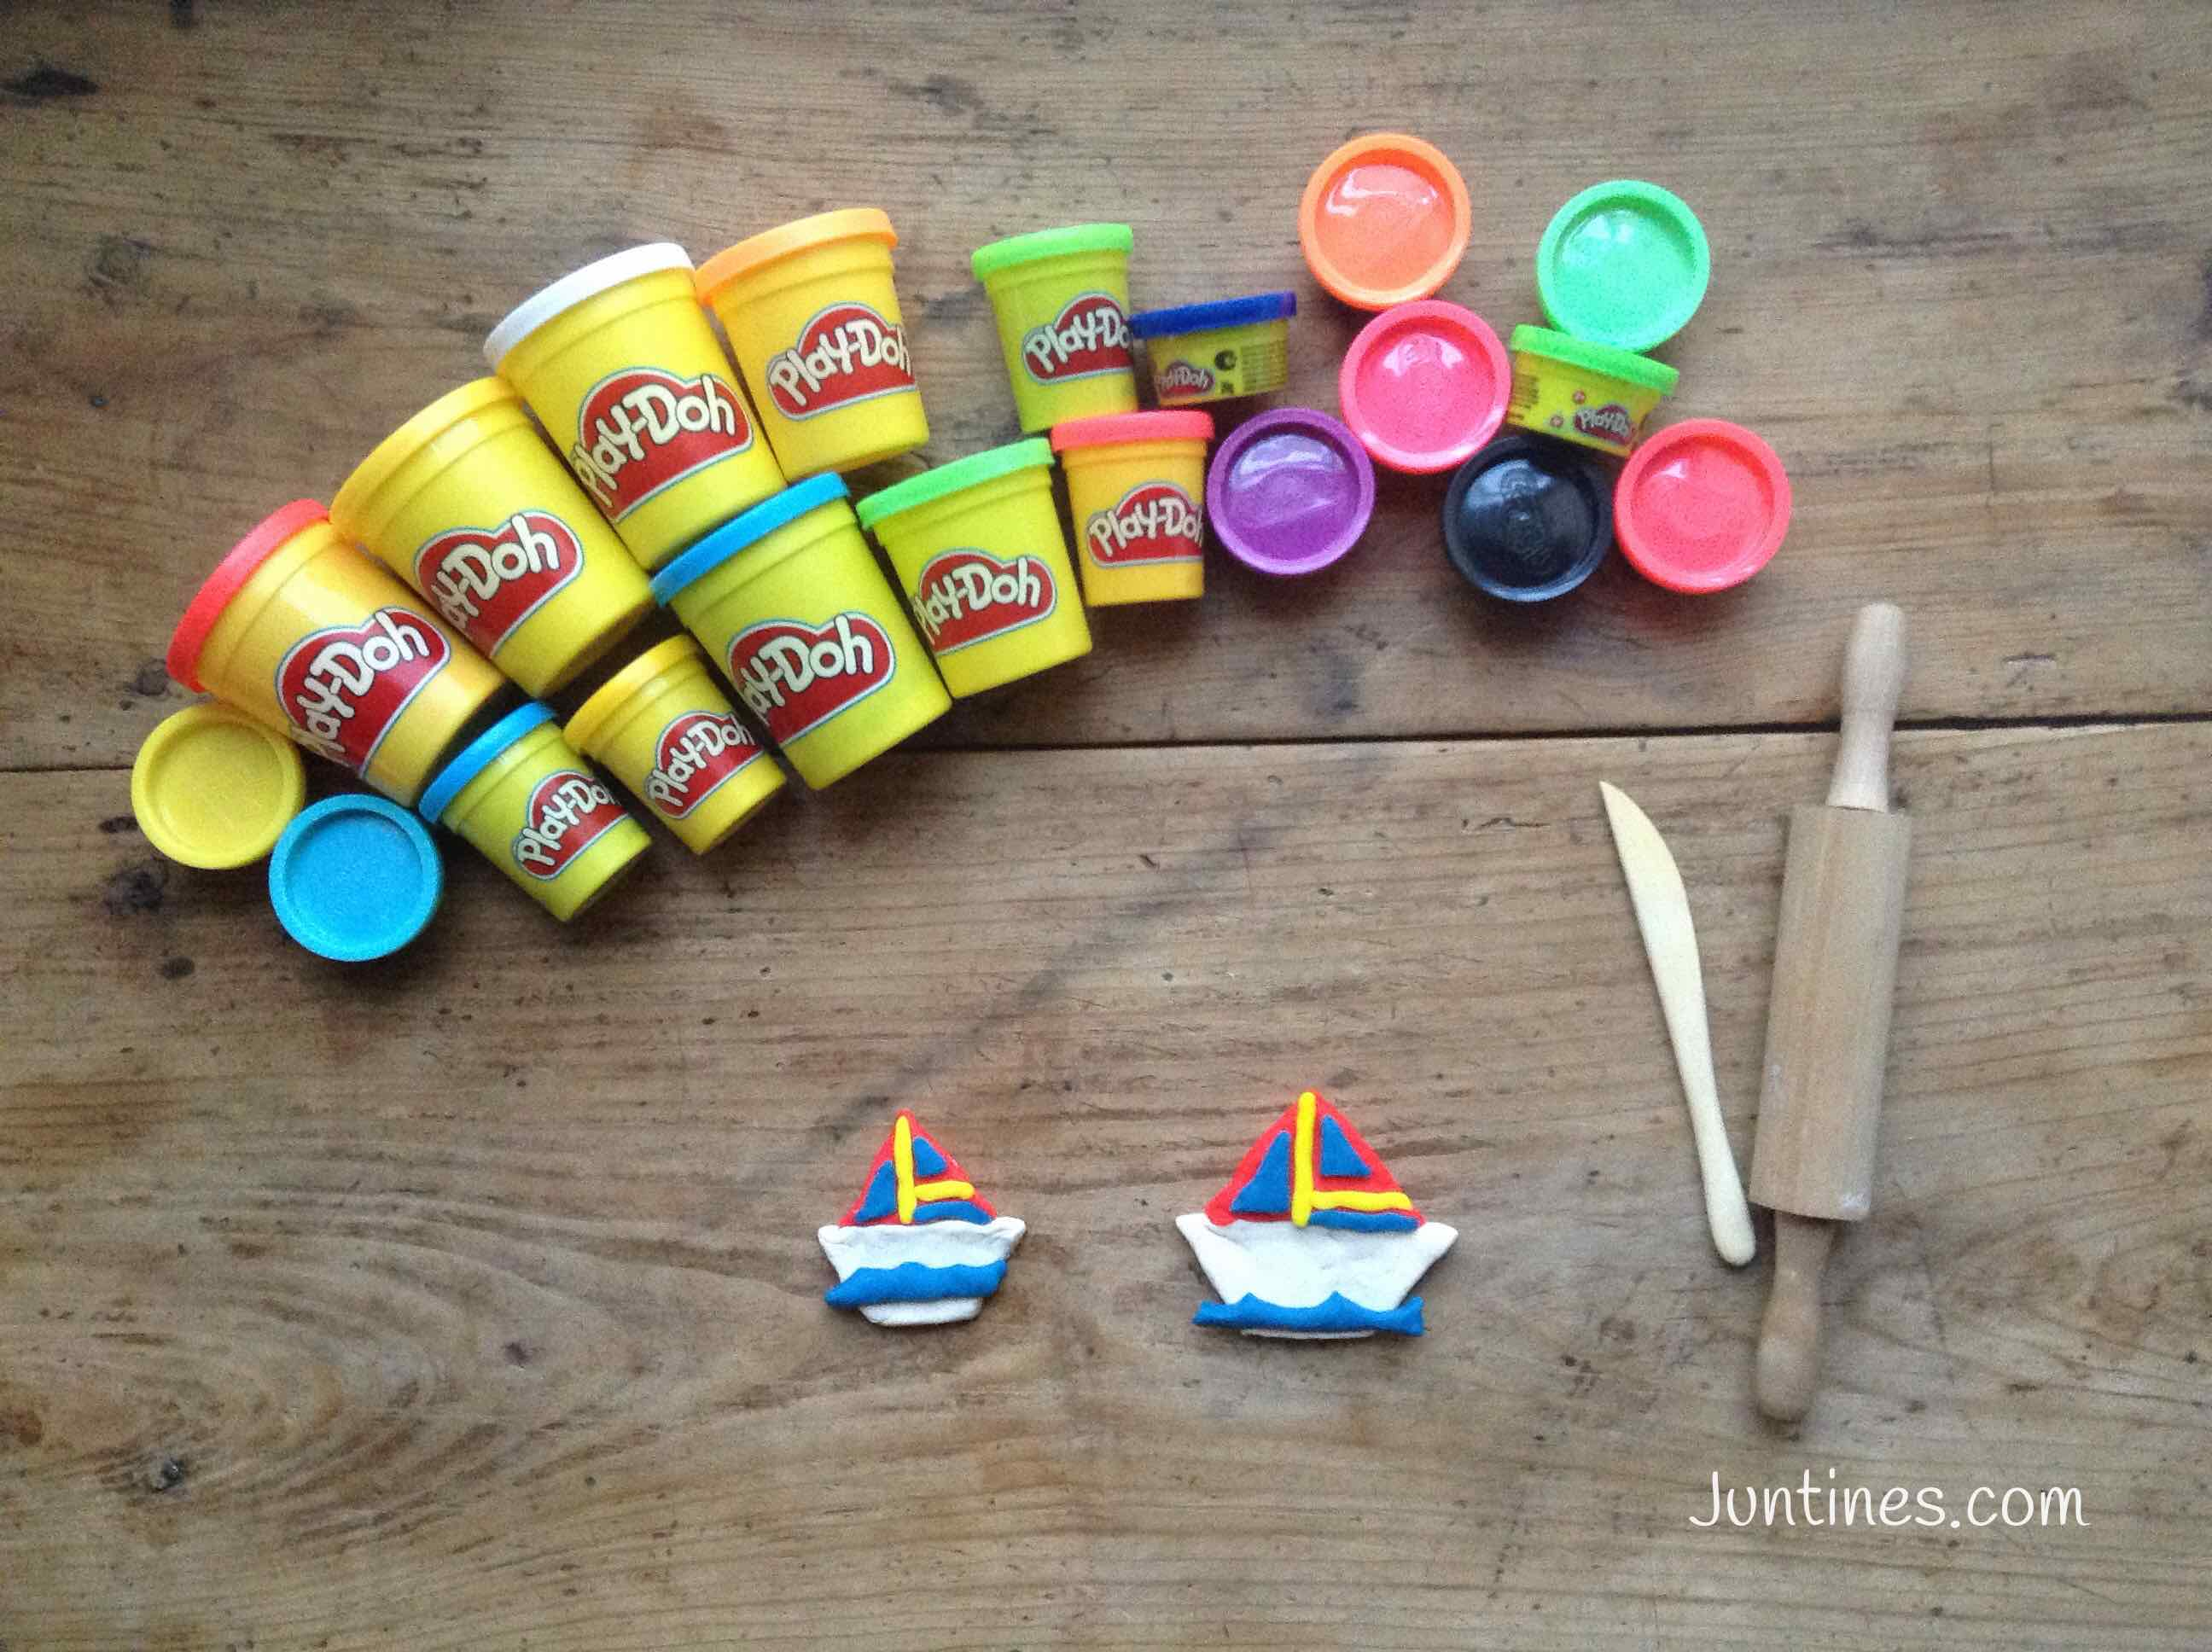 Barco Play Doh